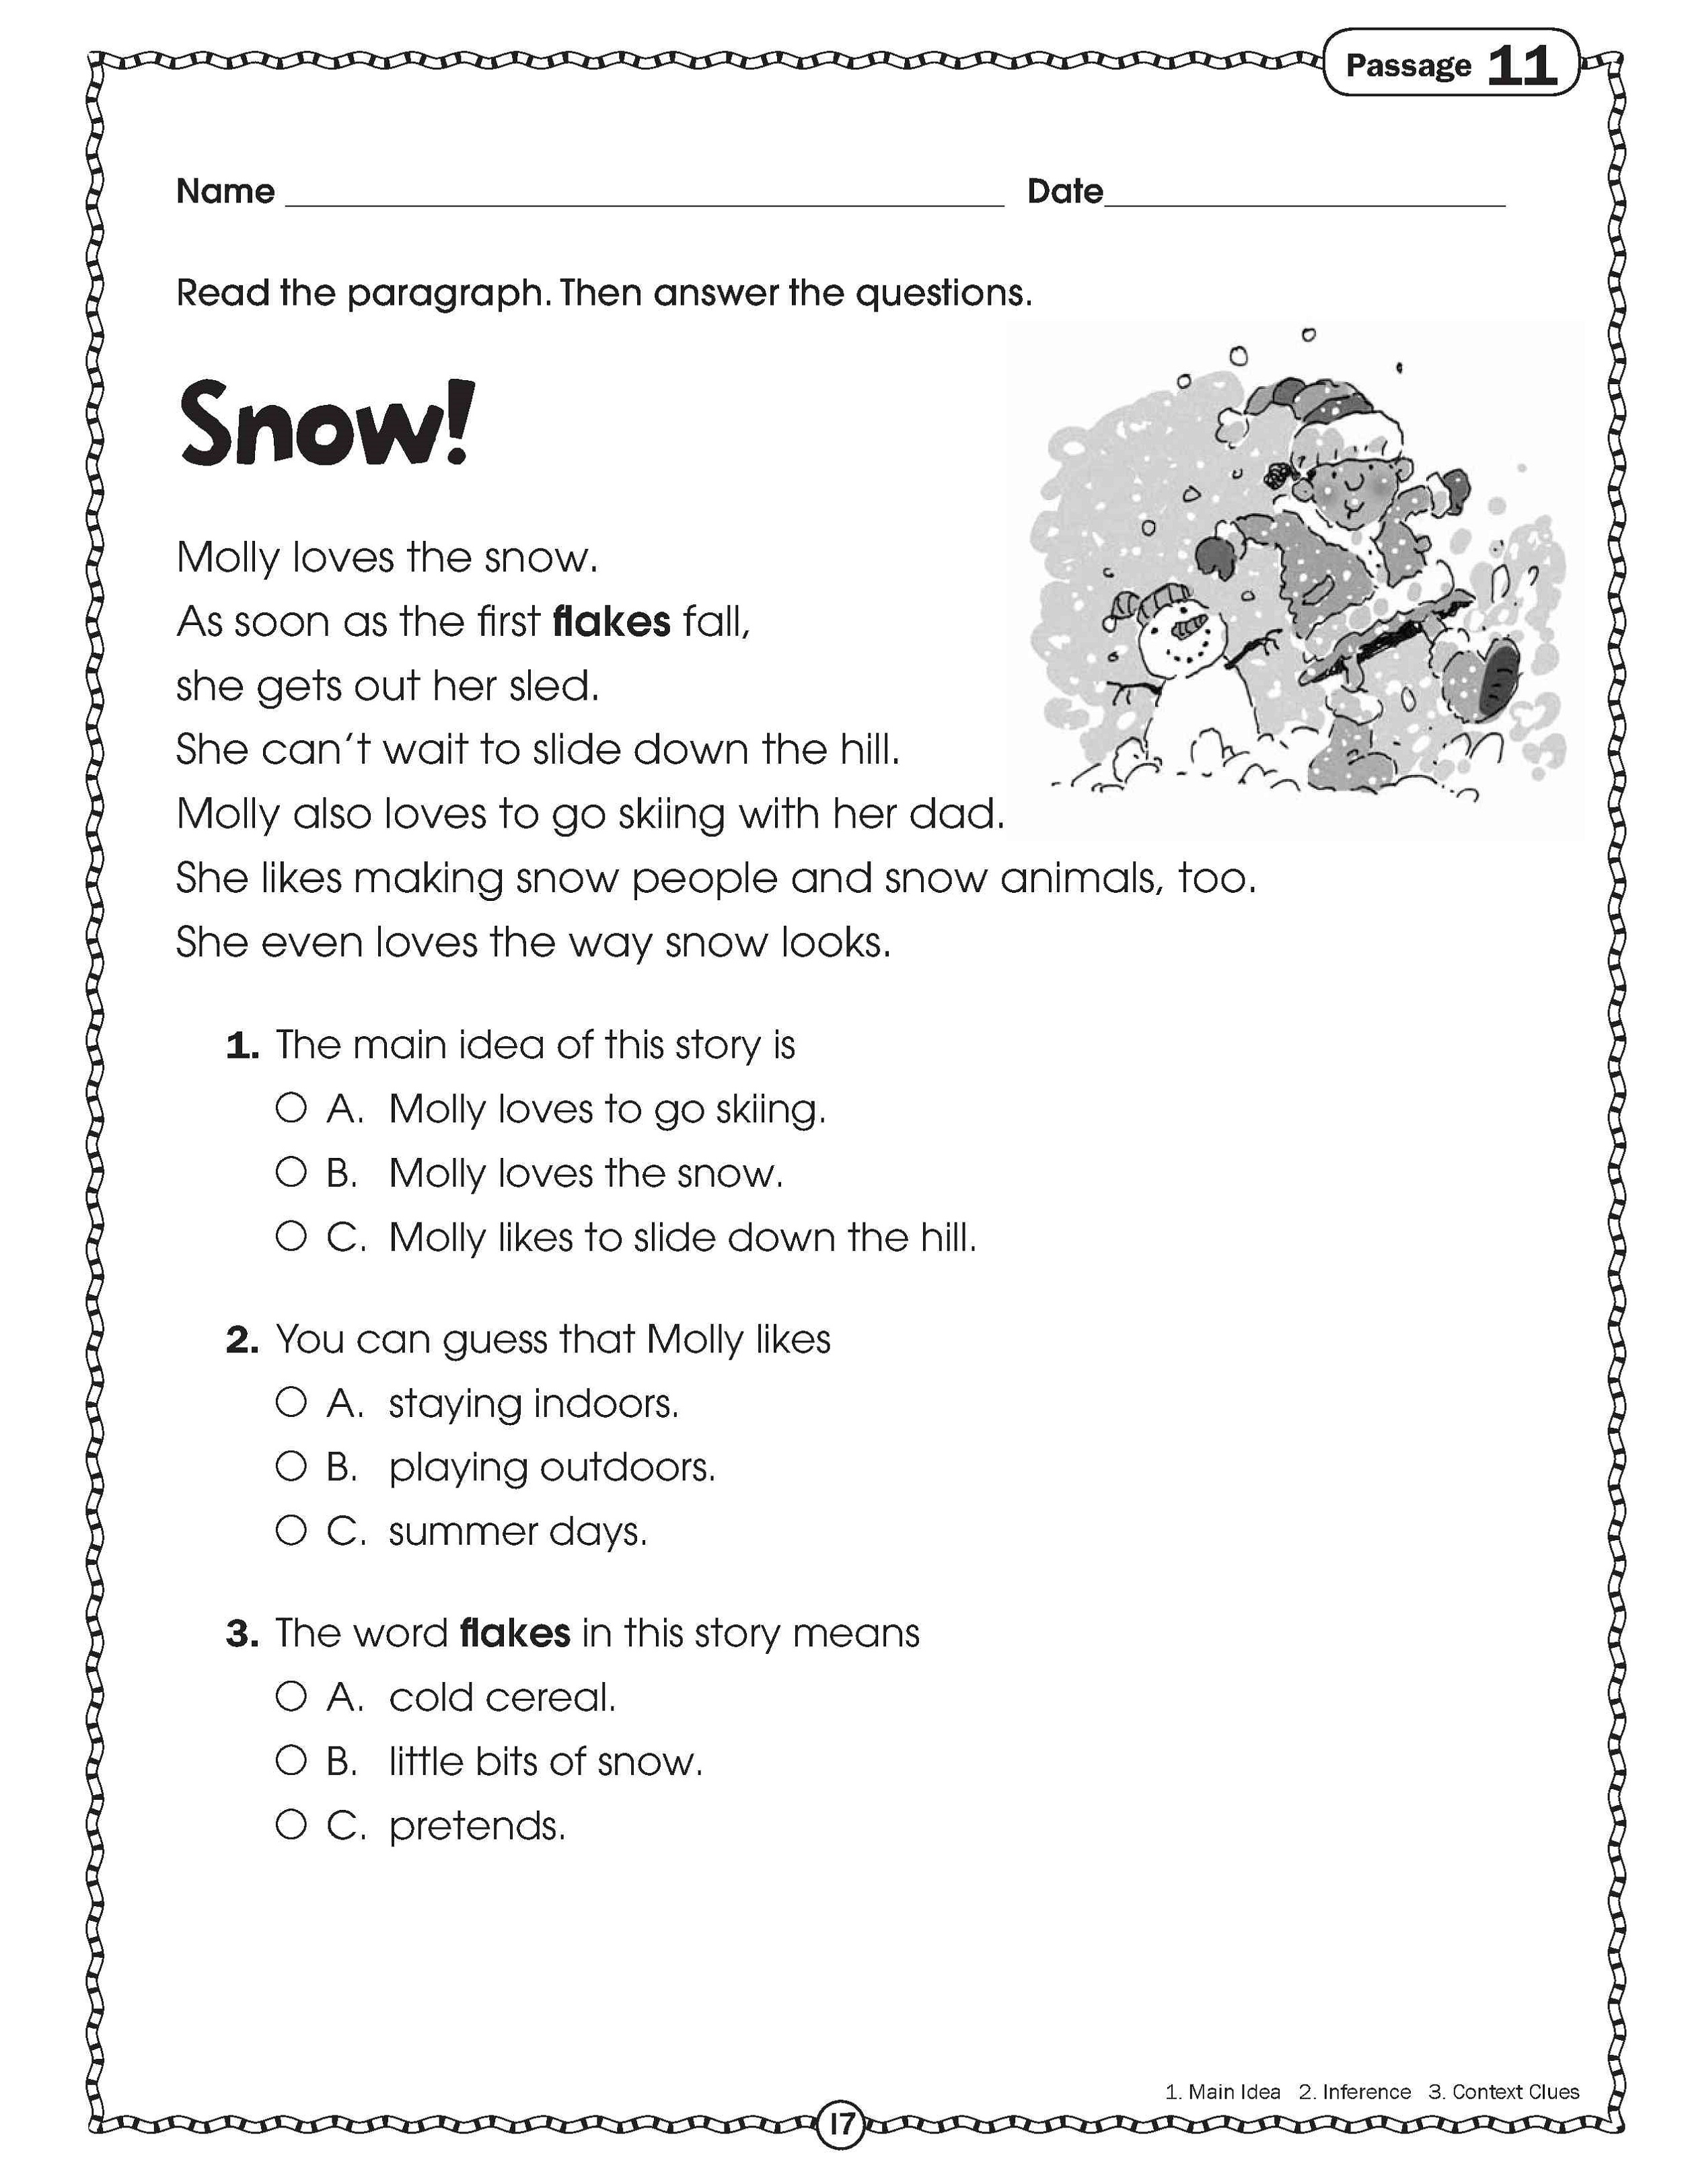 Free Printable Worksheets For Elementary Students Reading